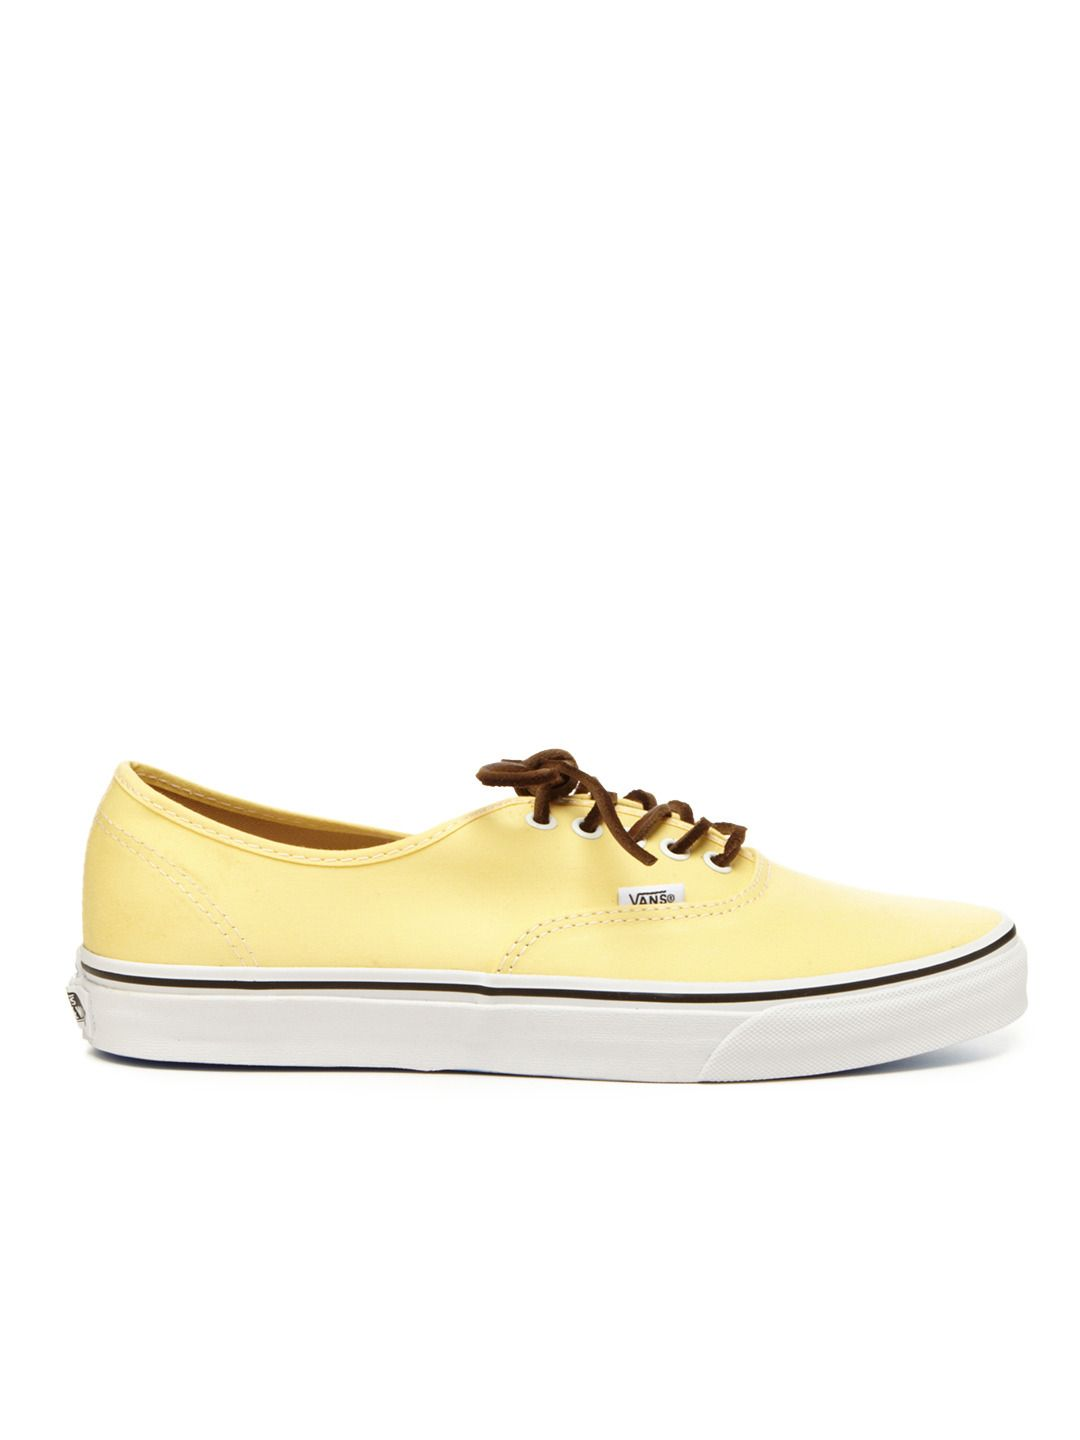 VANS California Authentic Canvas Sneakers